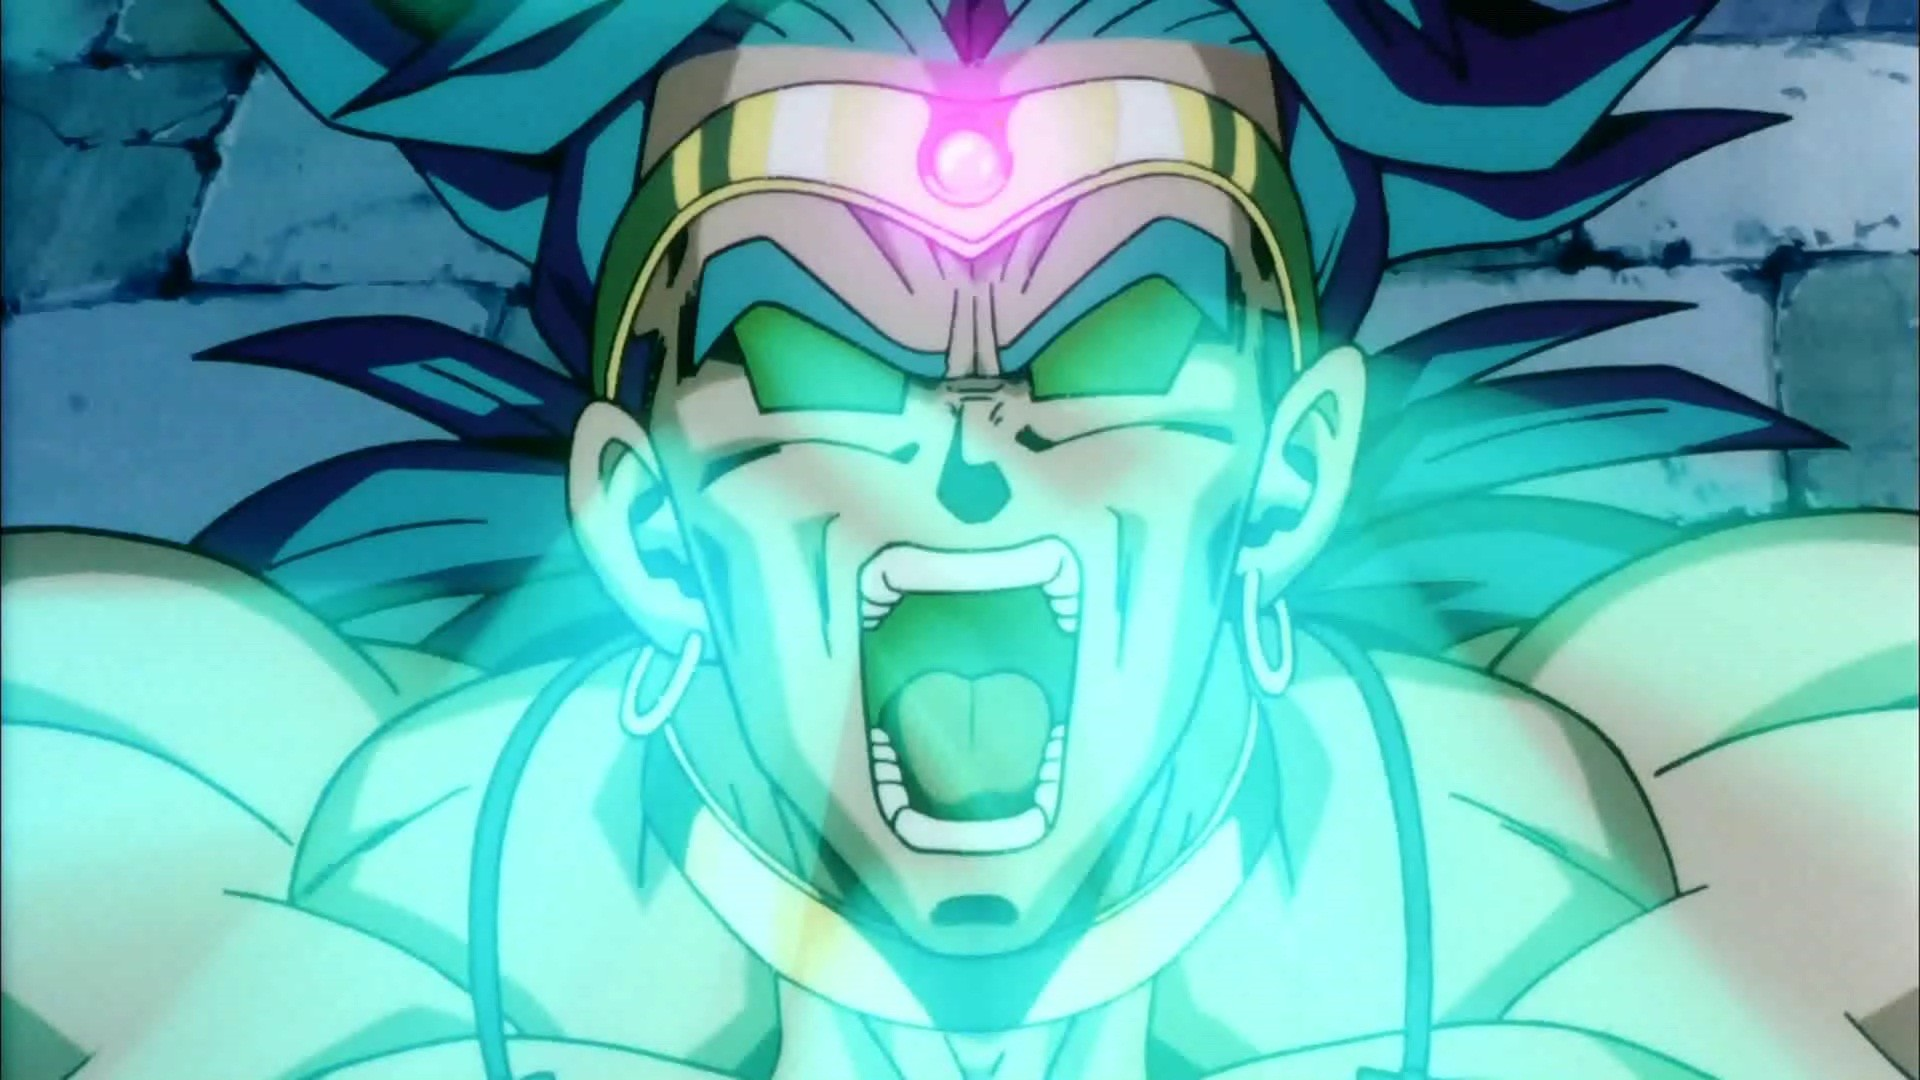 Broly Background Free Download.